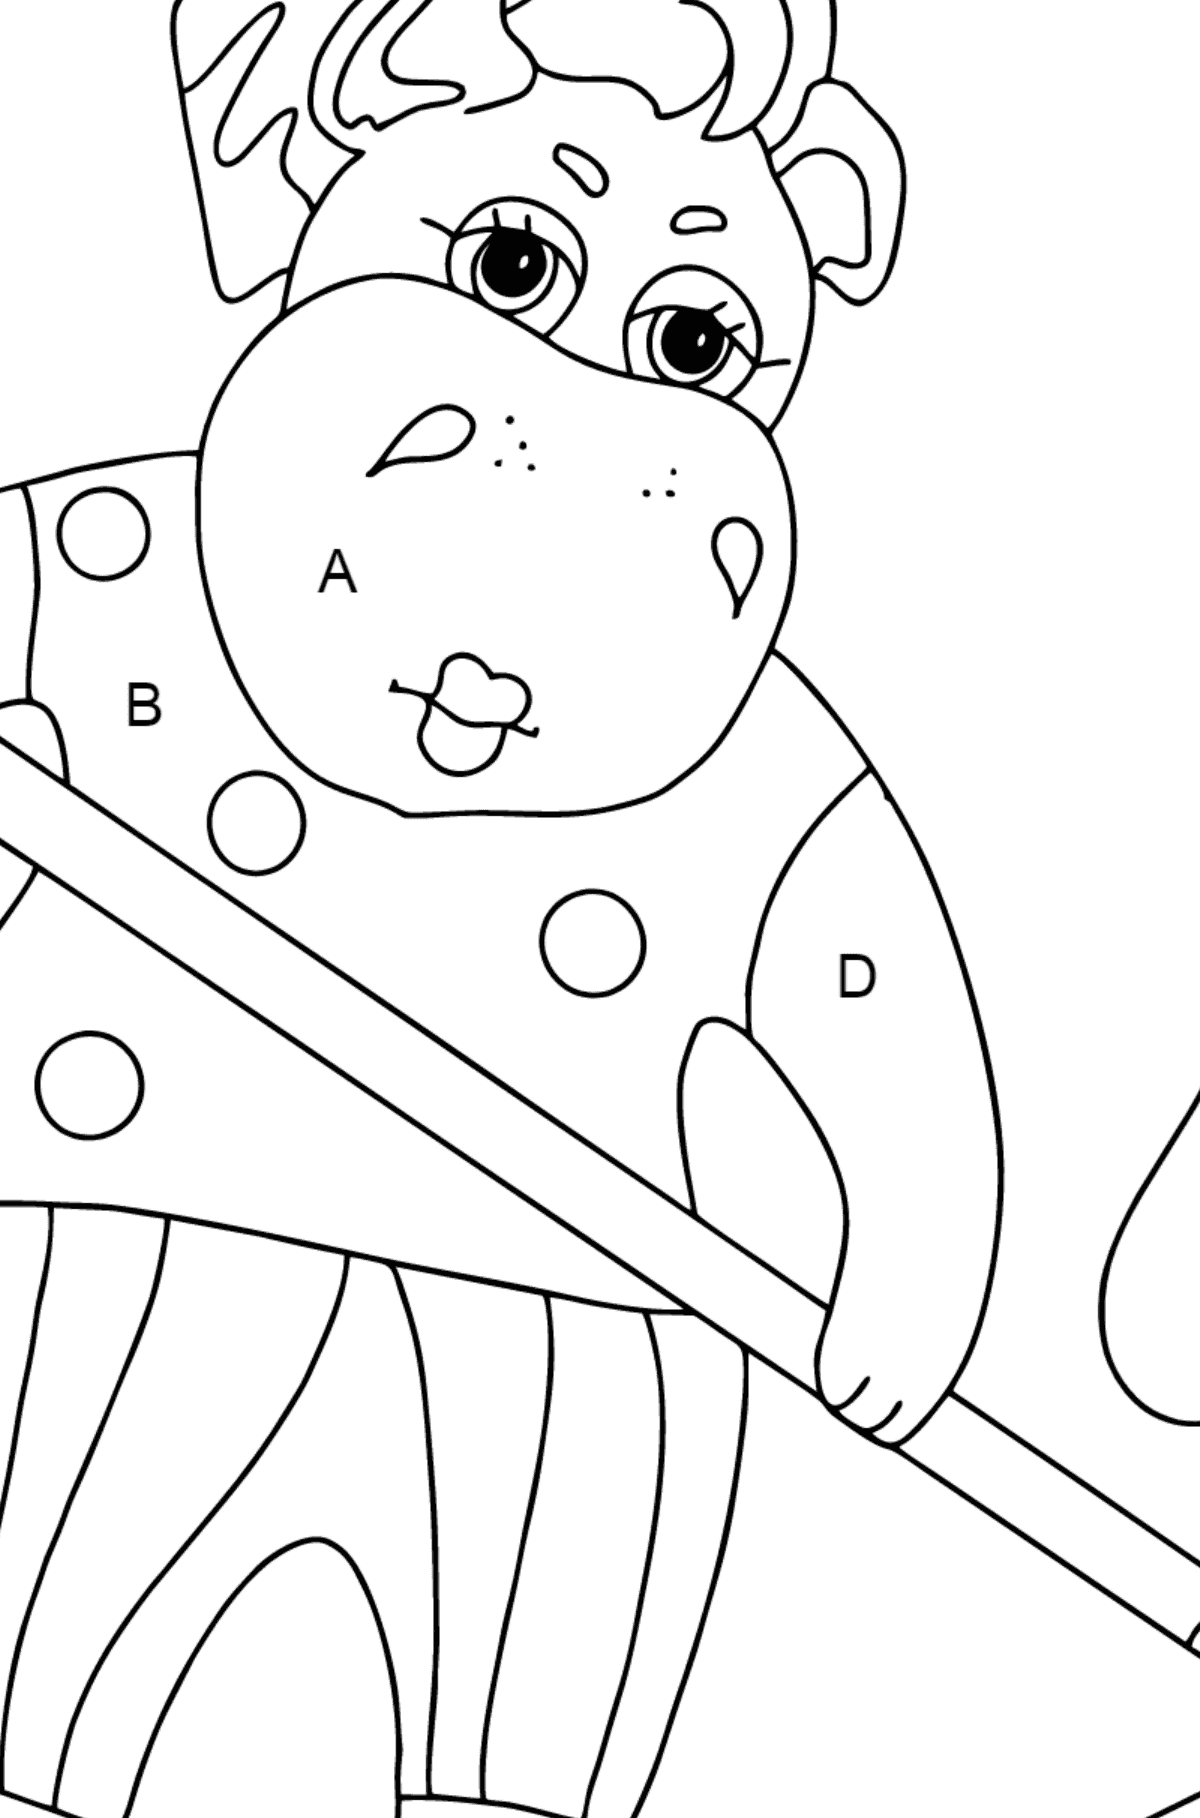 Coloring Page - A Hippo is Collecting Fallen Leaves for Kids  - Color by Letters